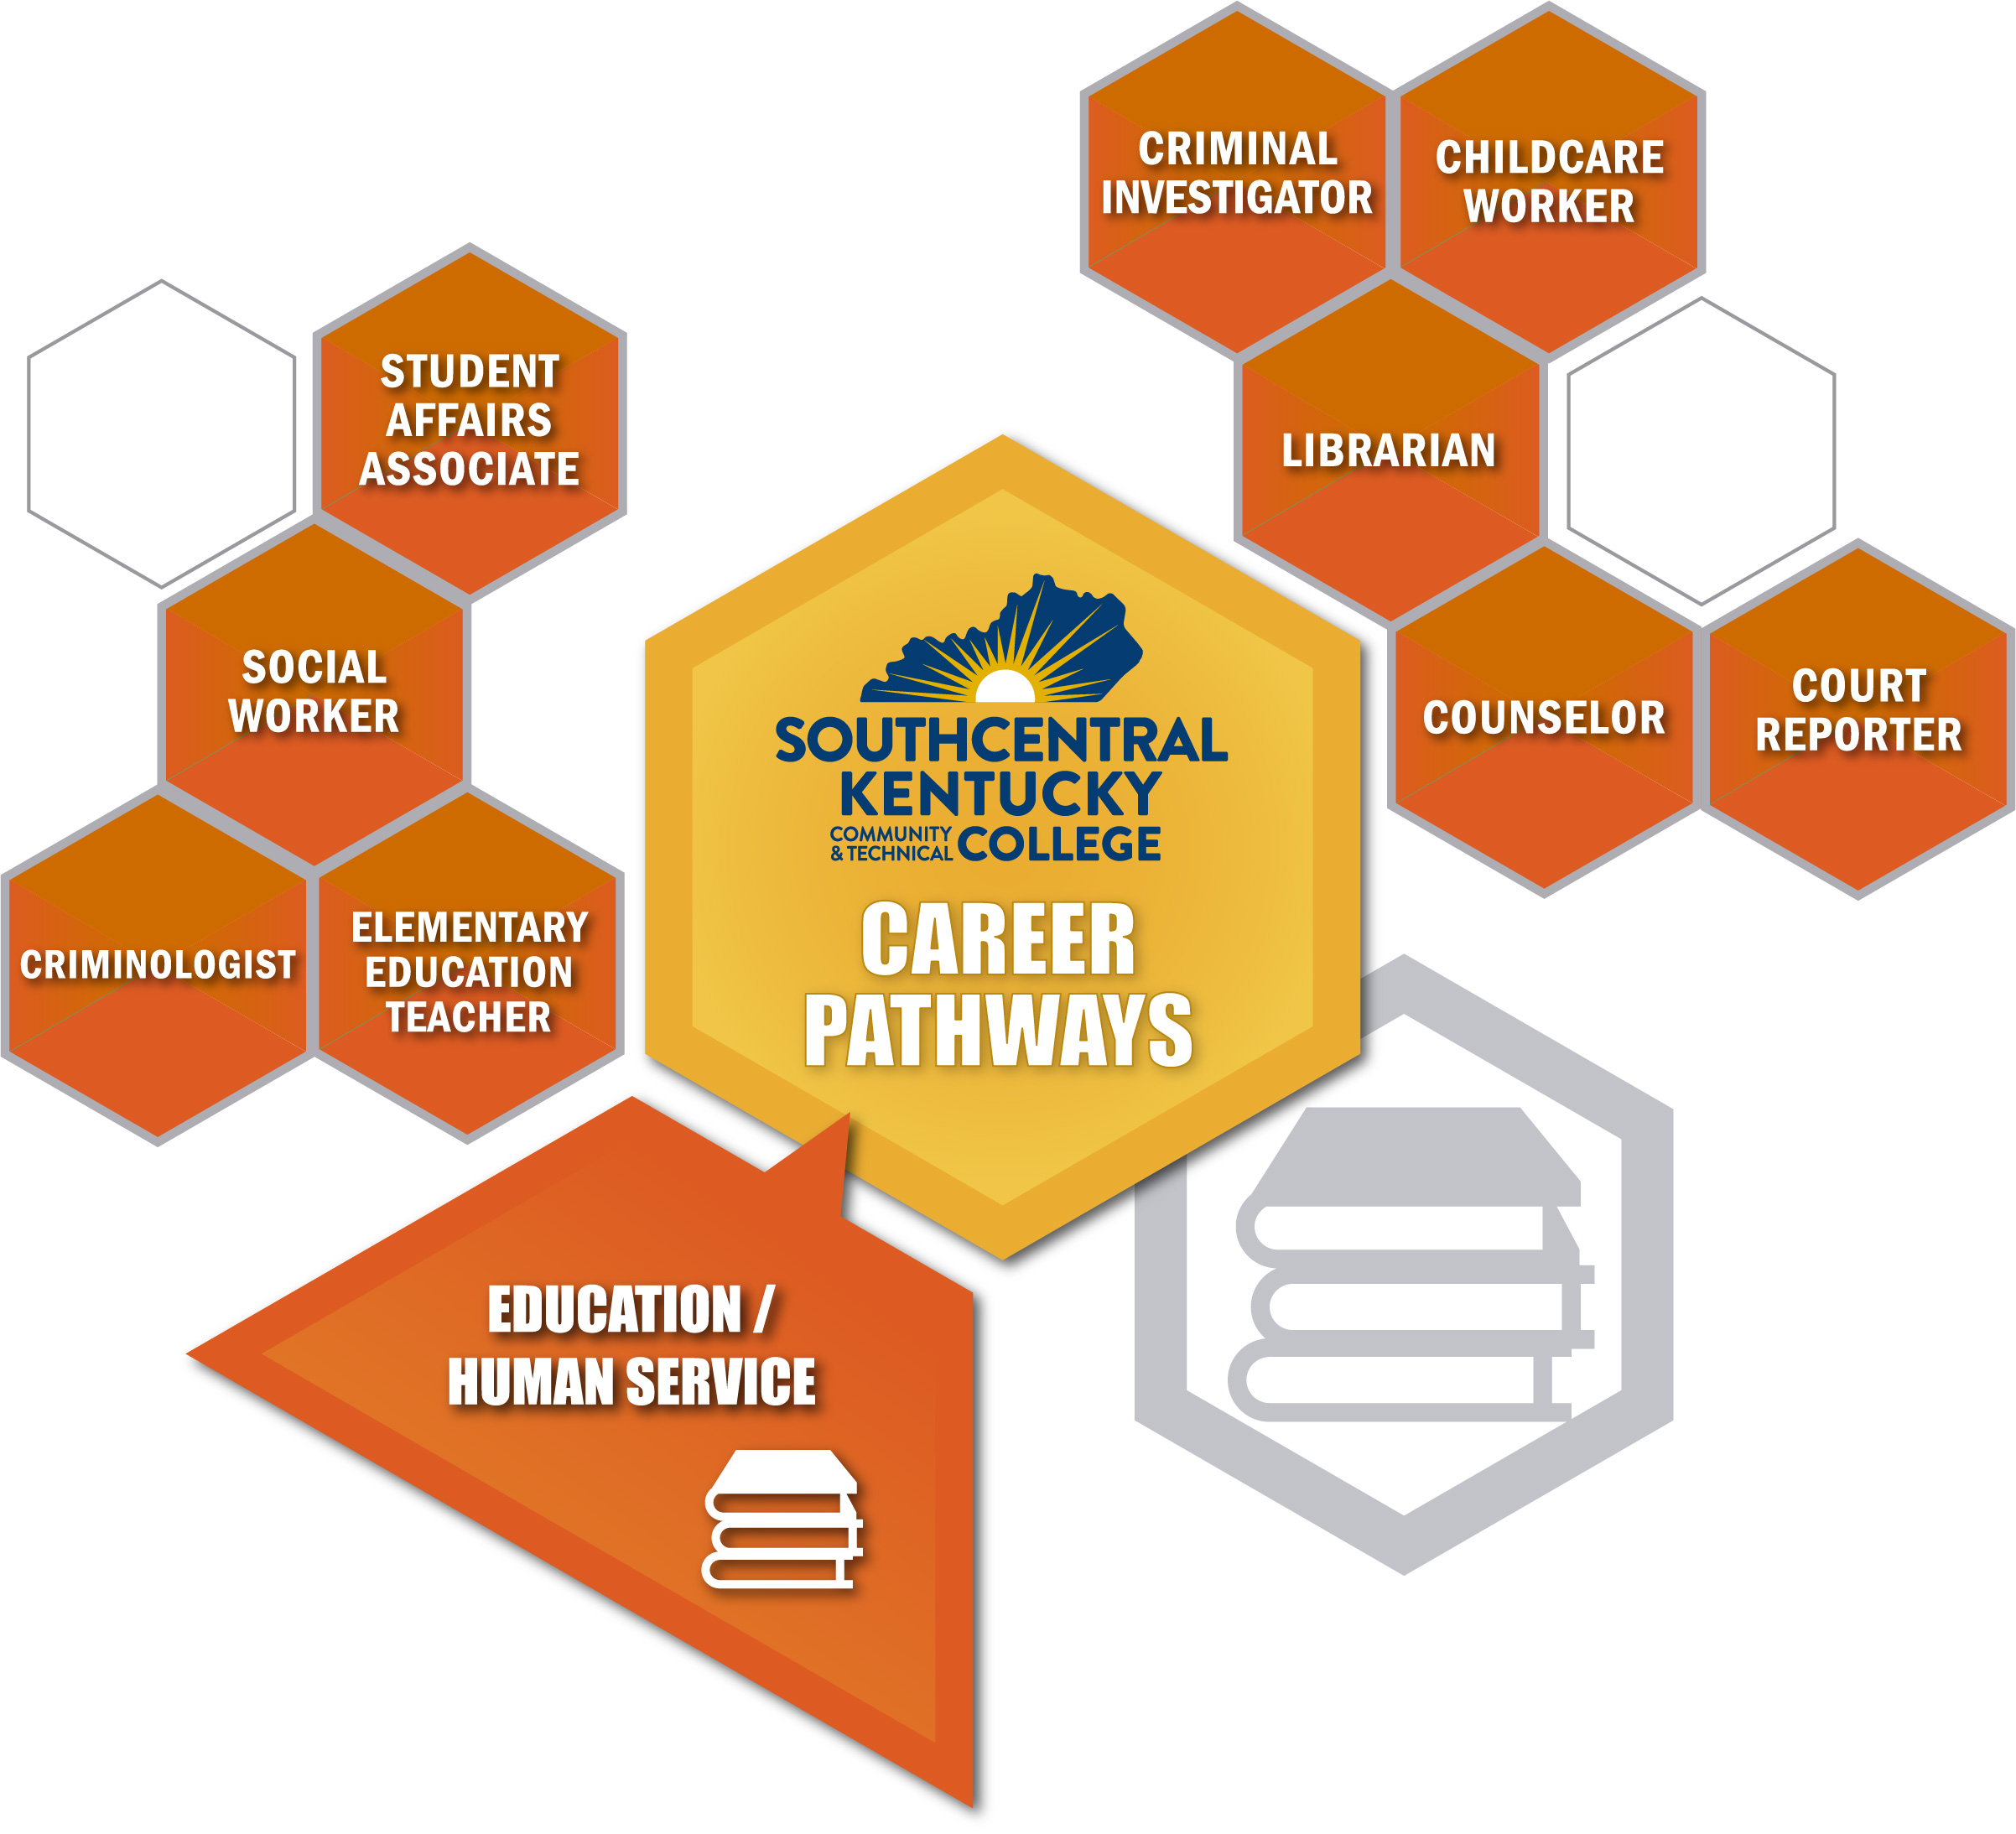 Social career sector with related careers listed. Same careers listed below the image.